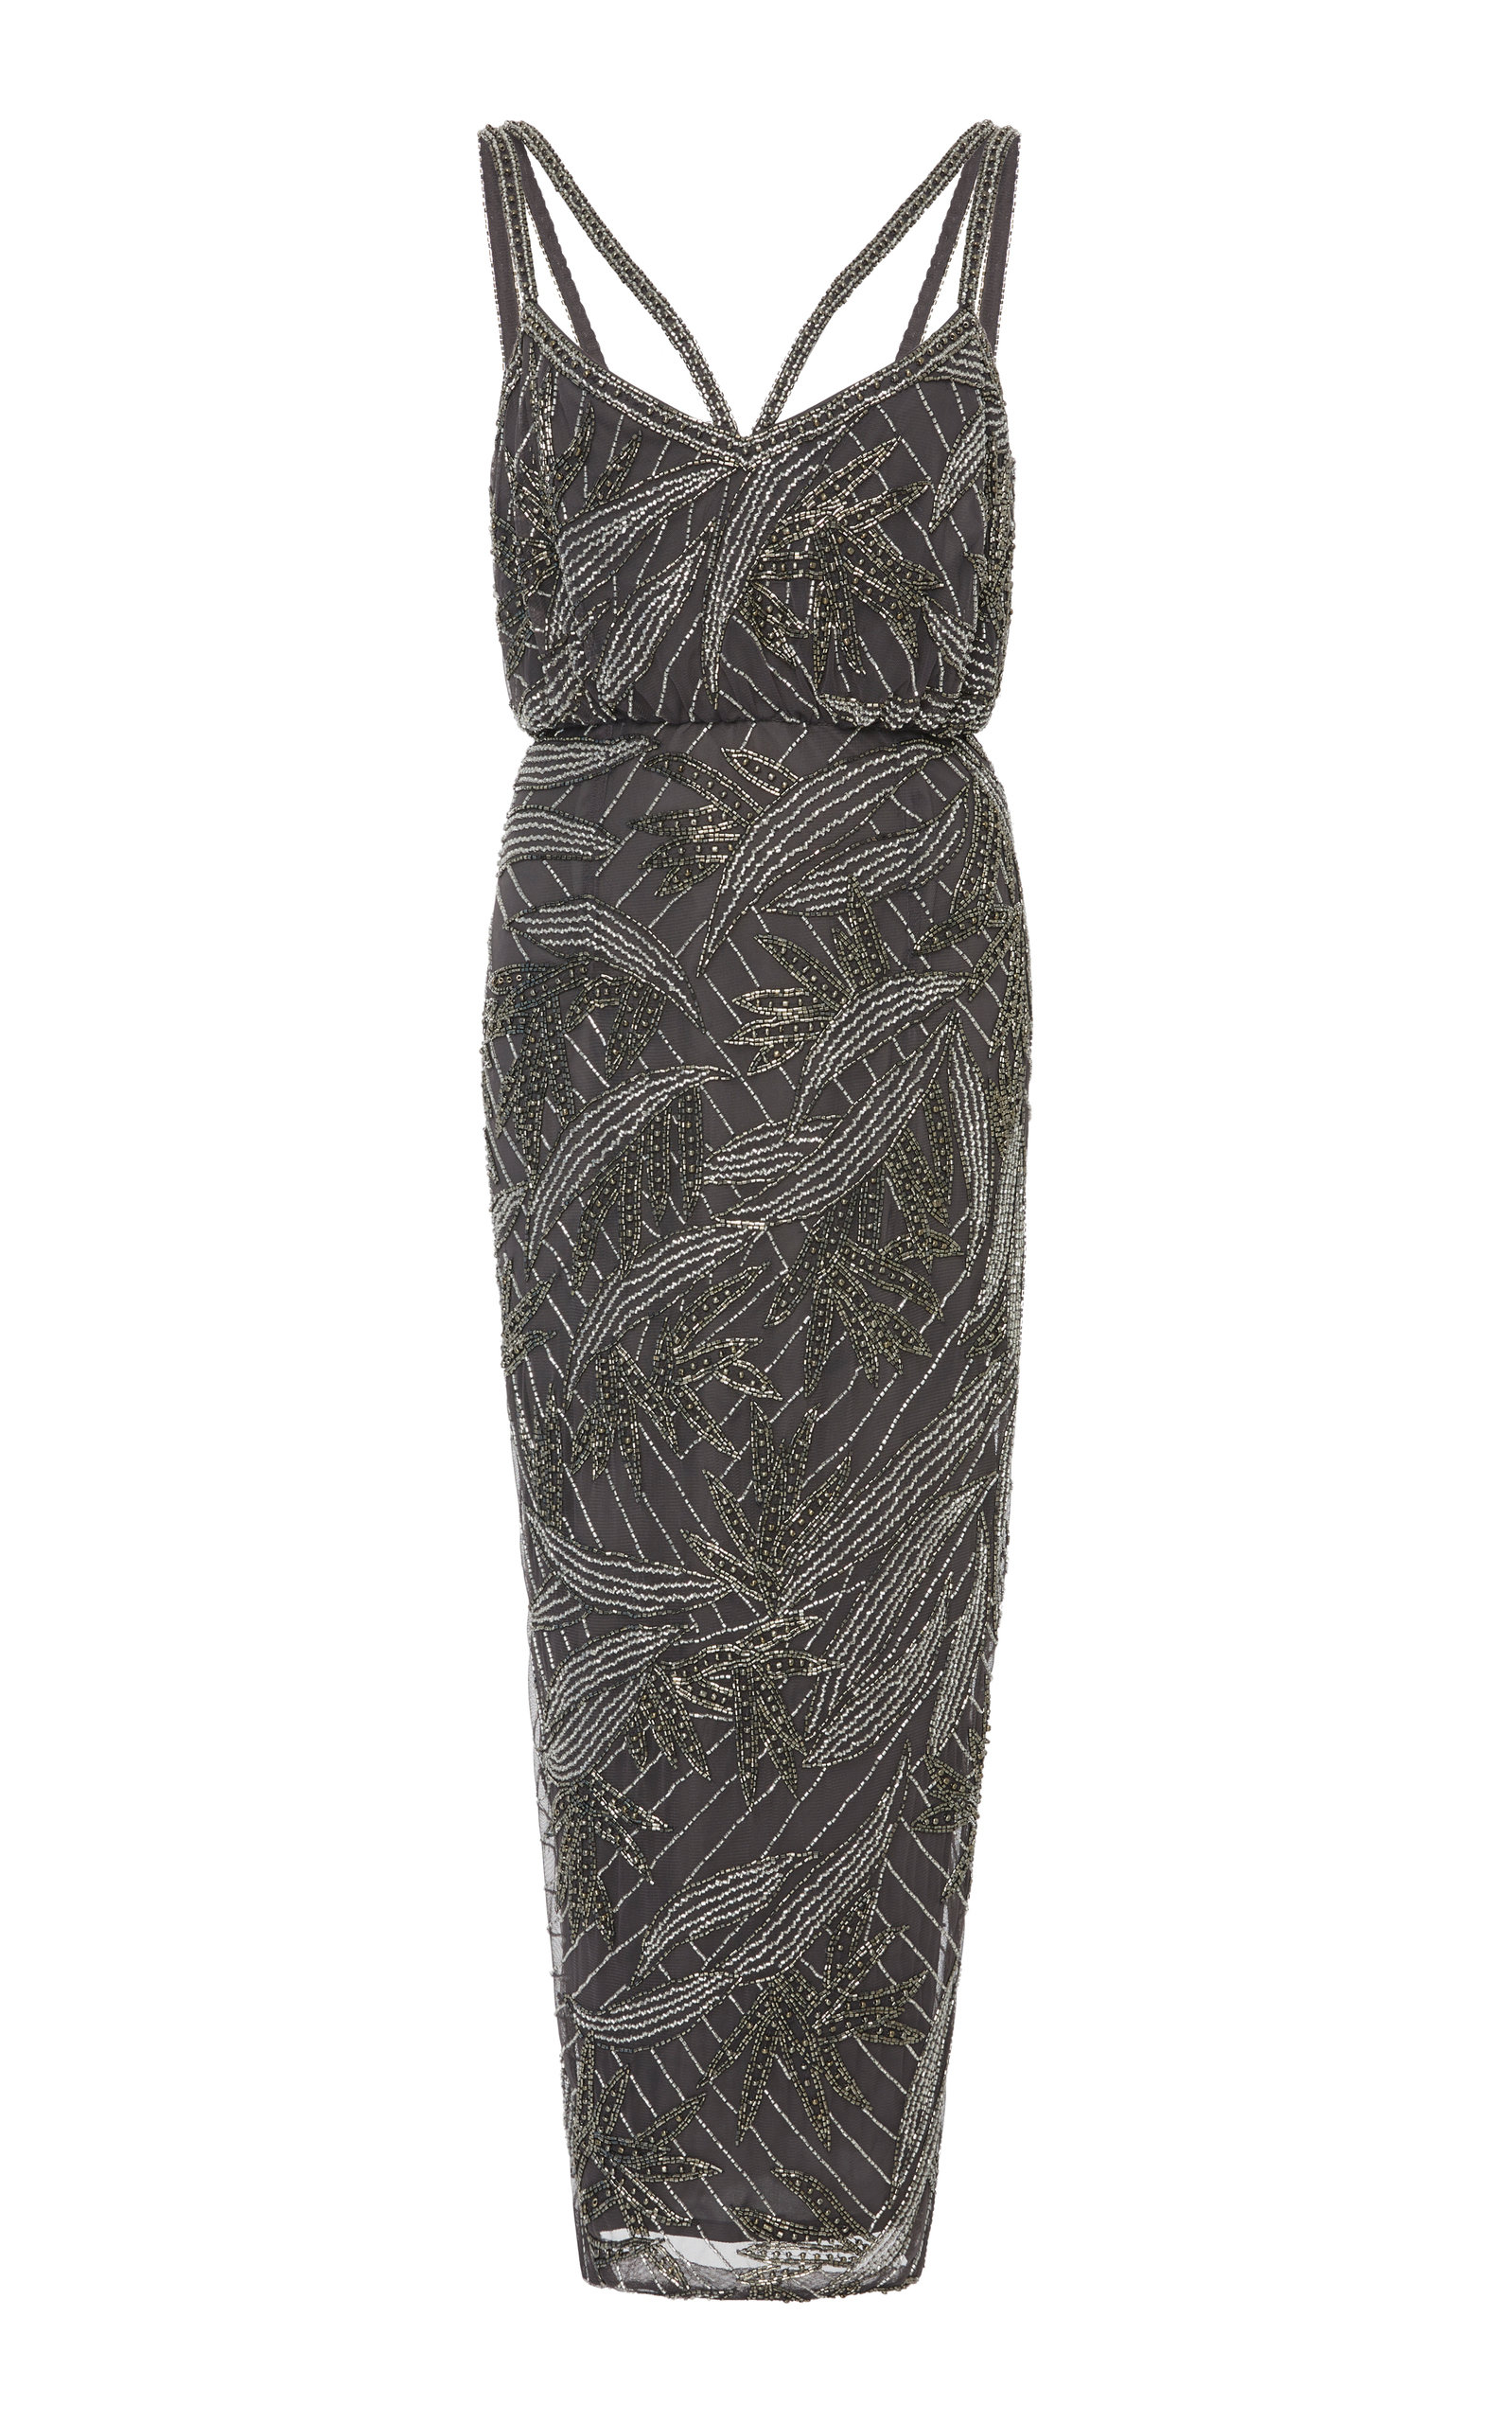 RACHEL GILBERT AMIRA BEADED DRESS